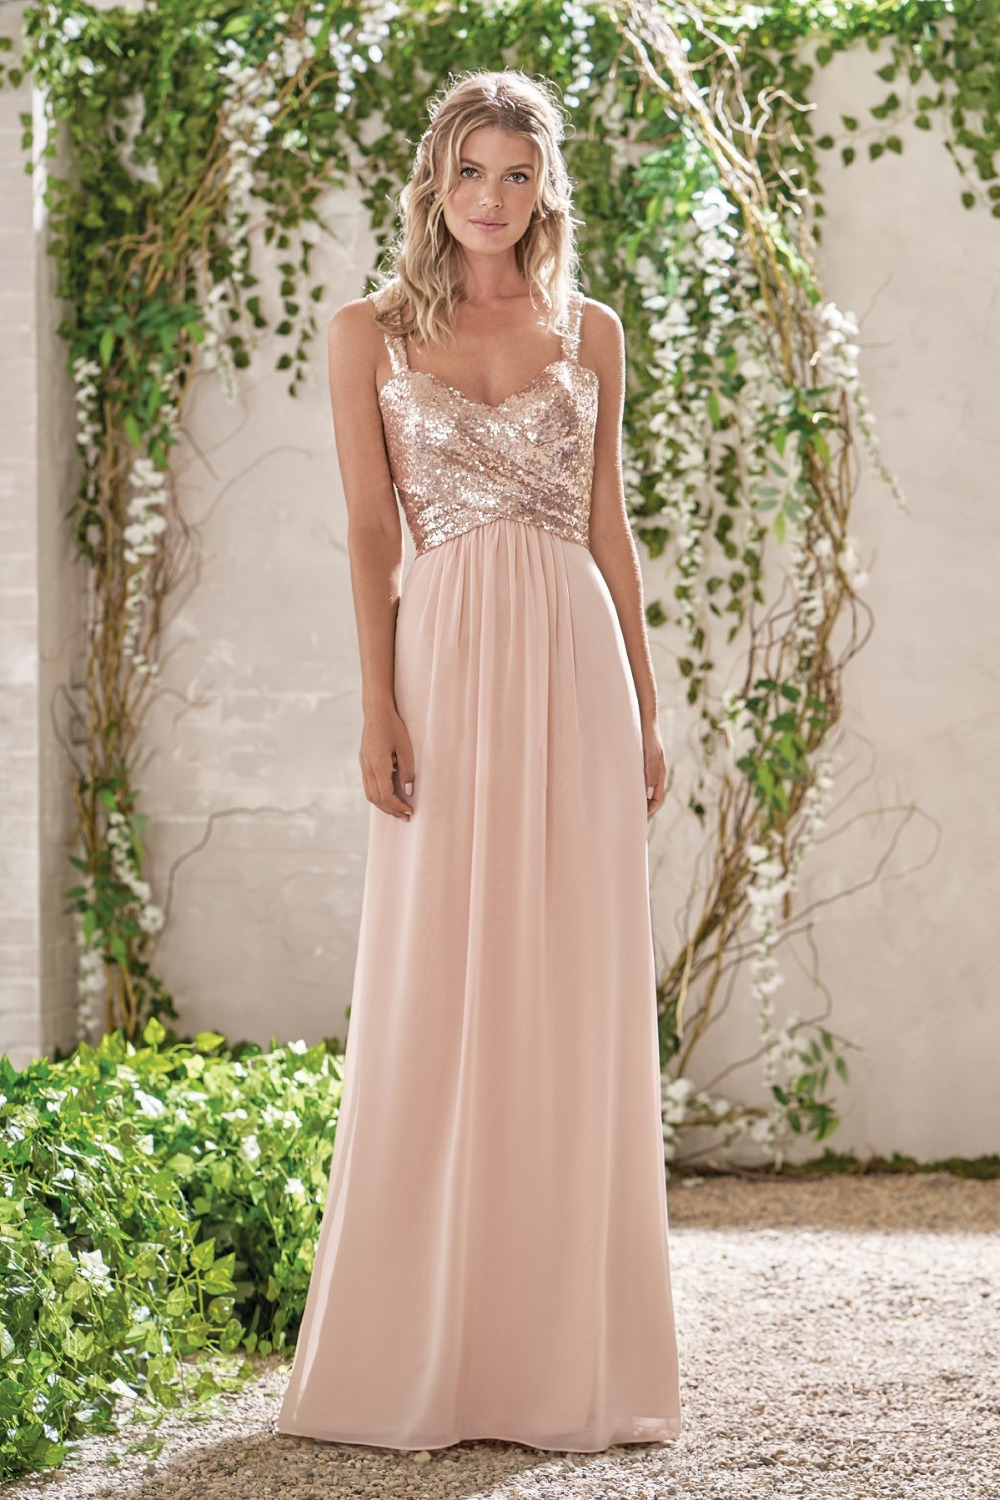 Pink A Line Spaghetti Straps Backless Sequins Chiffon Maid Of Honor Bridesmaid Dress